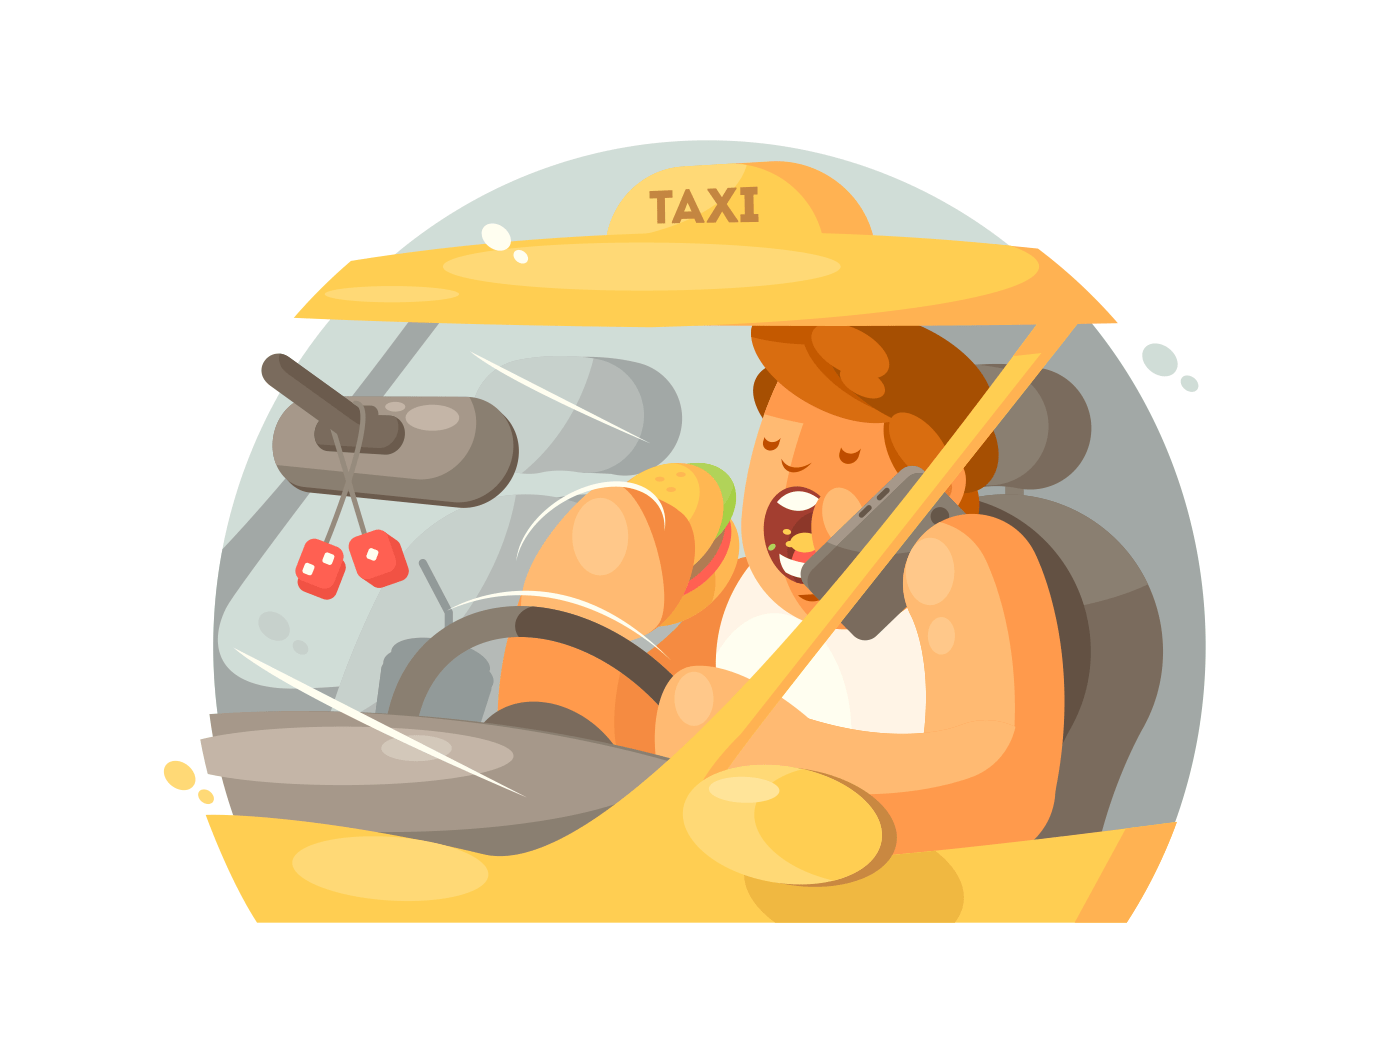 Taxi driver driving illustration